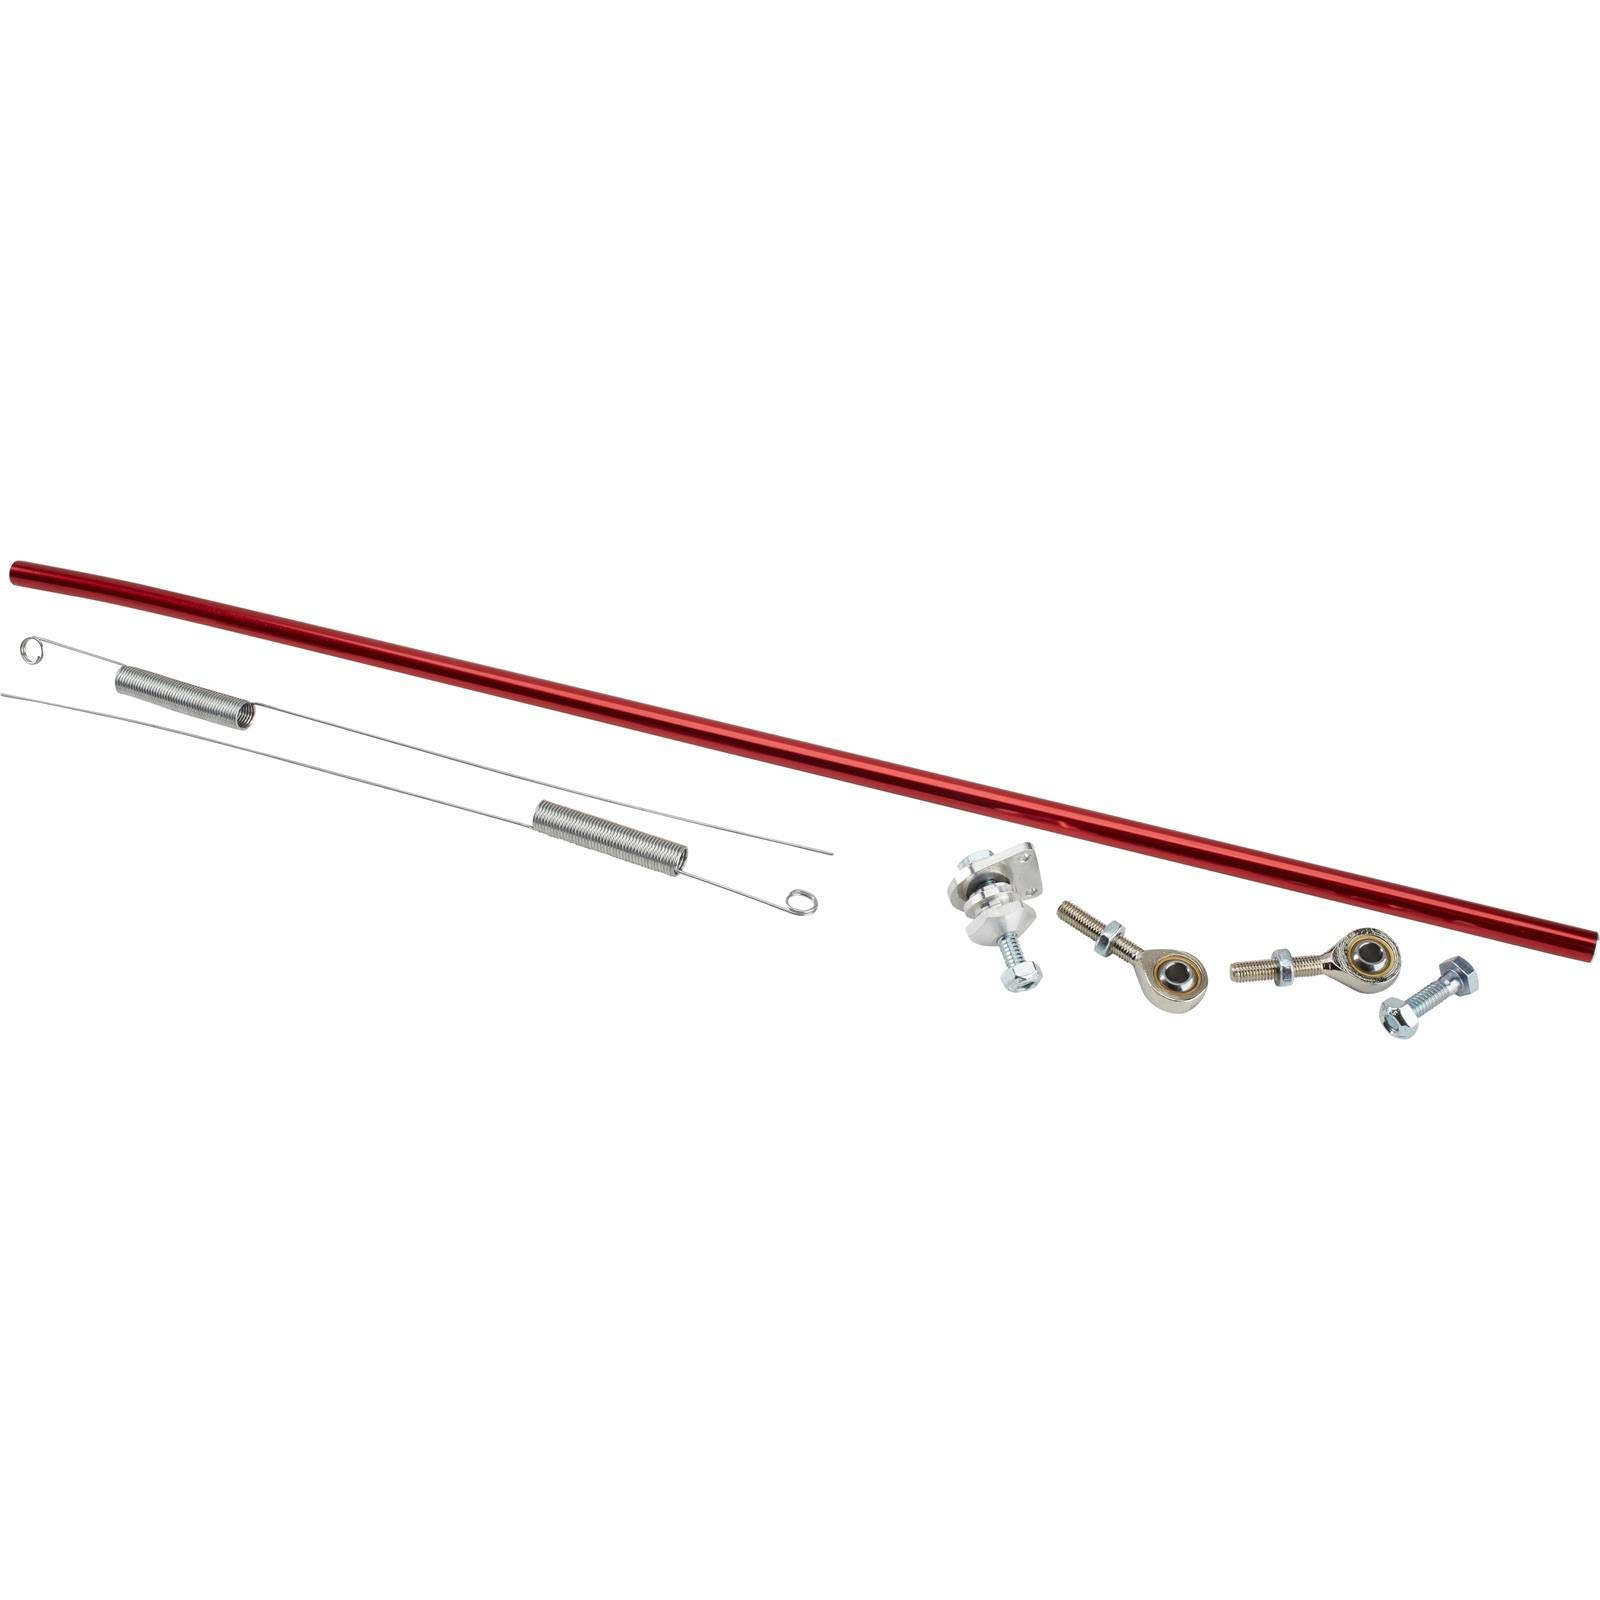 Camaro Throttle Rod Ecklers Premier Quality Products 33-185407 Universal